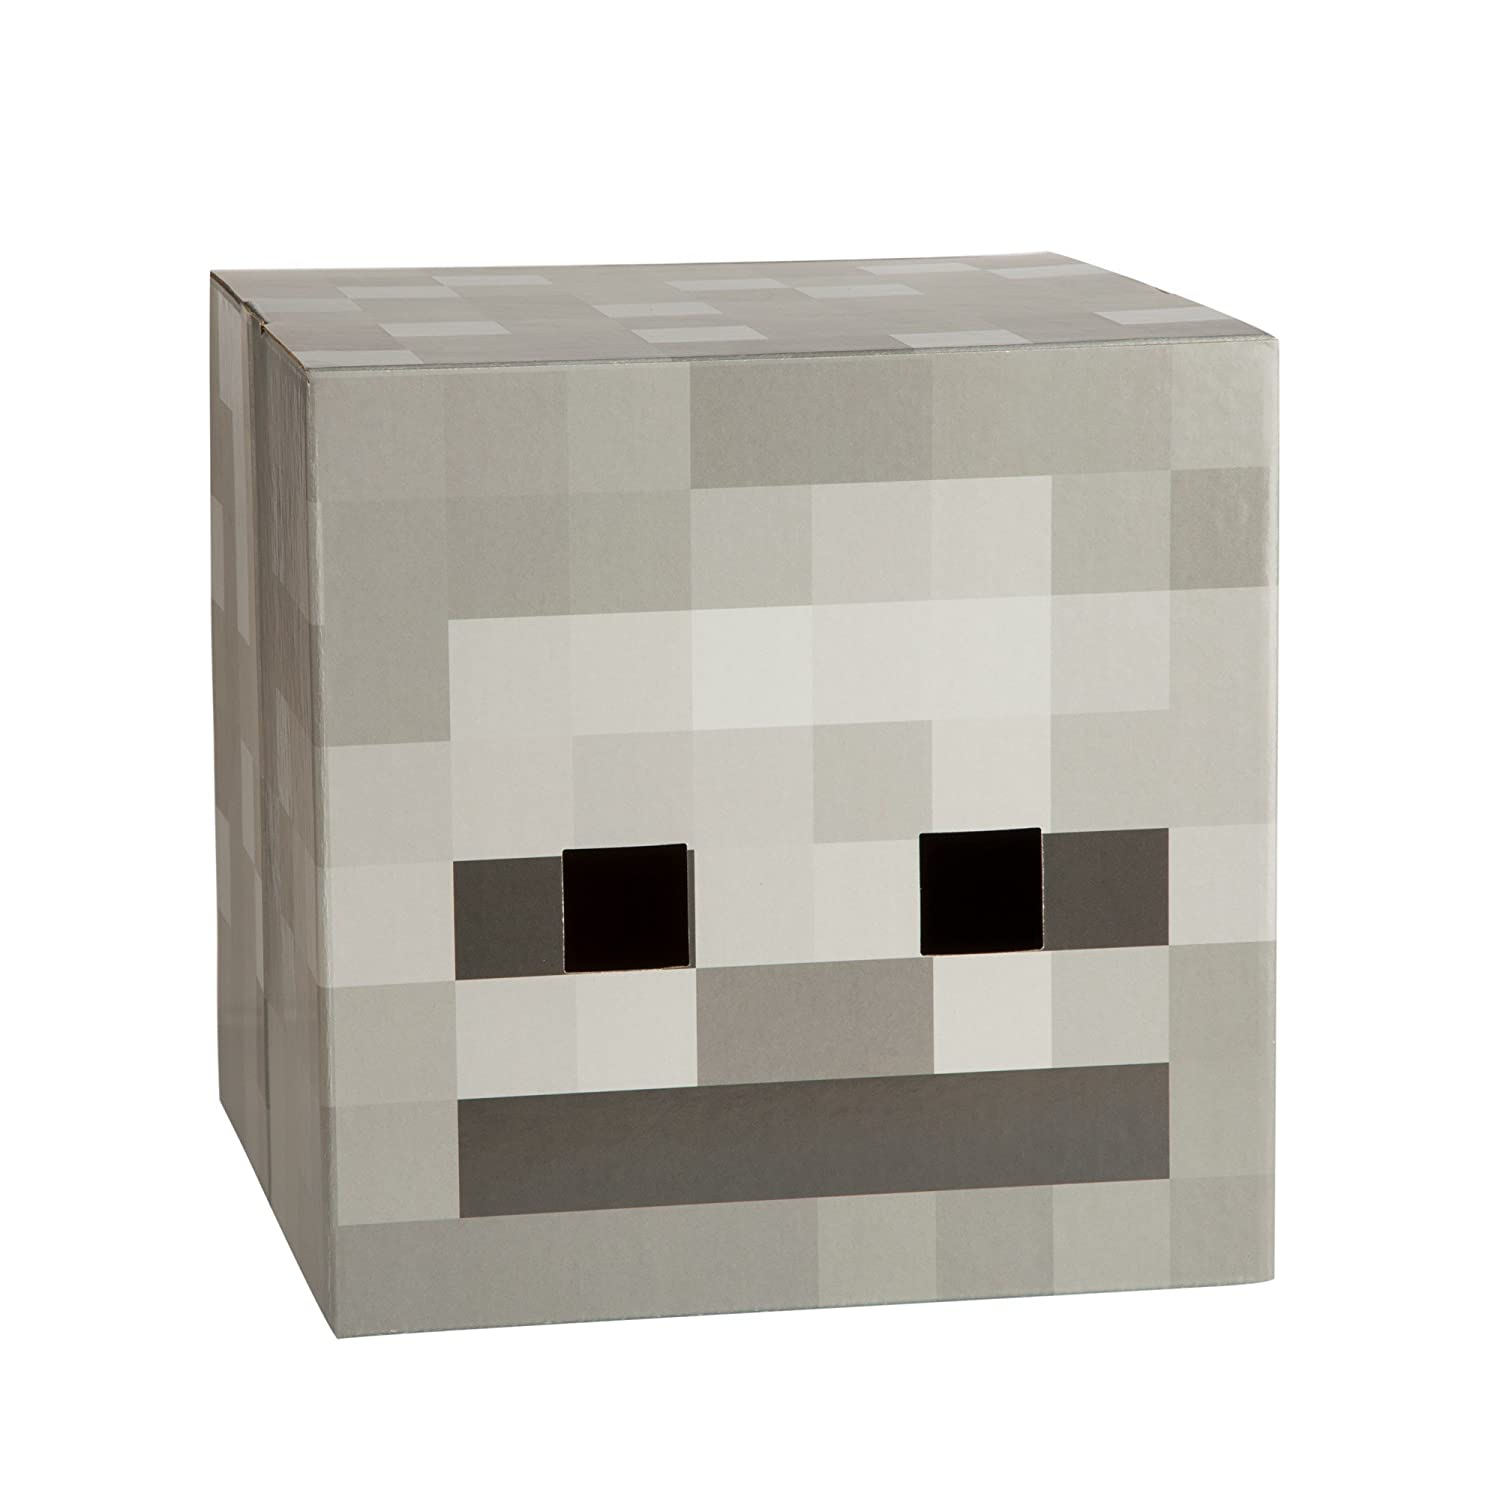 sc 1 st  Amazon.com & Amazon.com: JINX Minecraft Skeleton Head Costume Mask: Toys u0026 Games